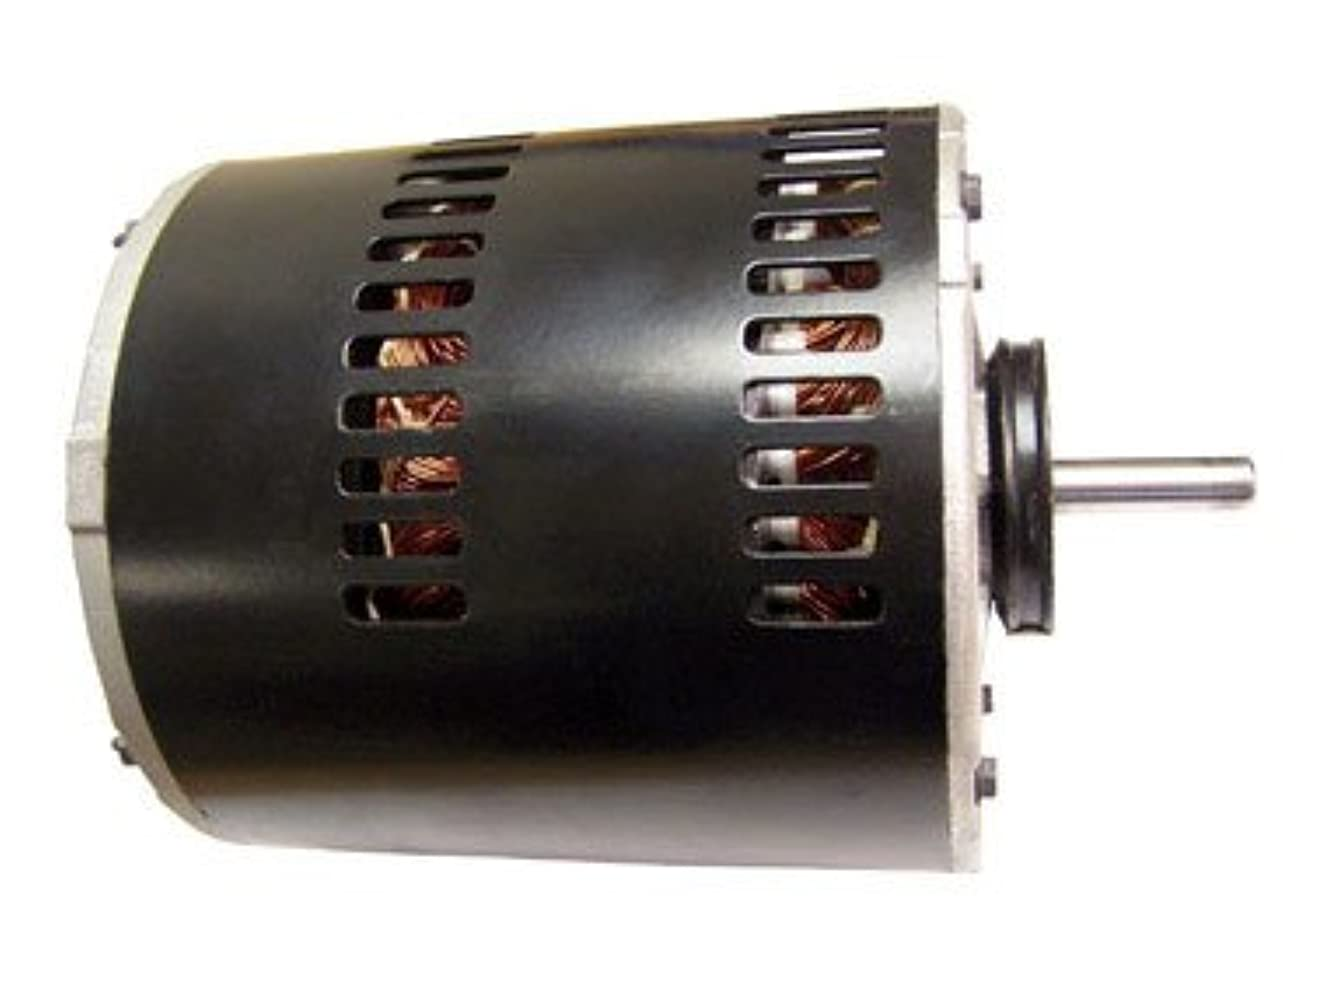 Phoenix Manufacturing 05-007-0046 3/4 HP Evaporative Cooler Motor, 2-Speed, 120-Volt